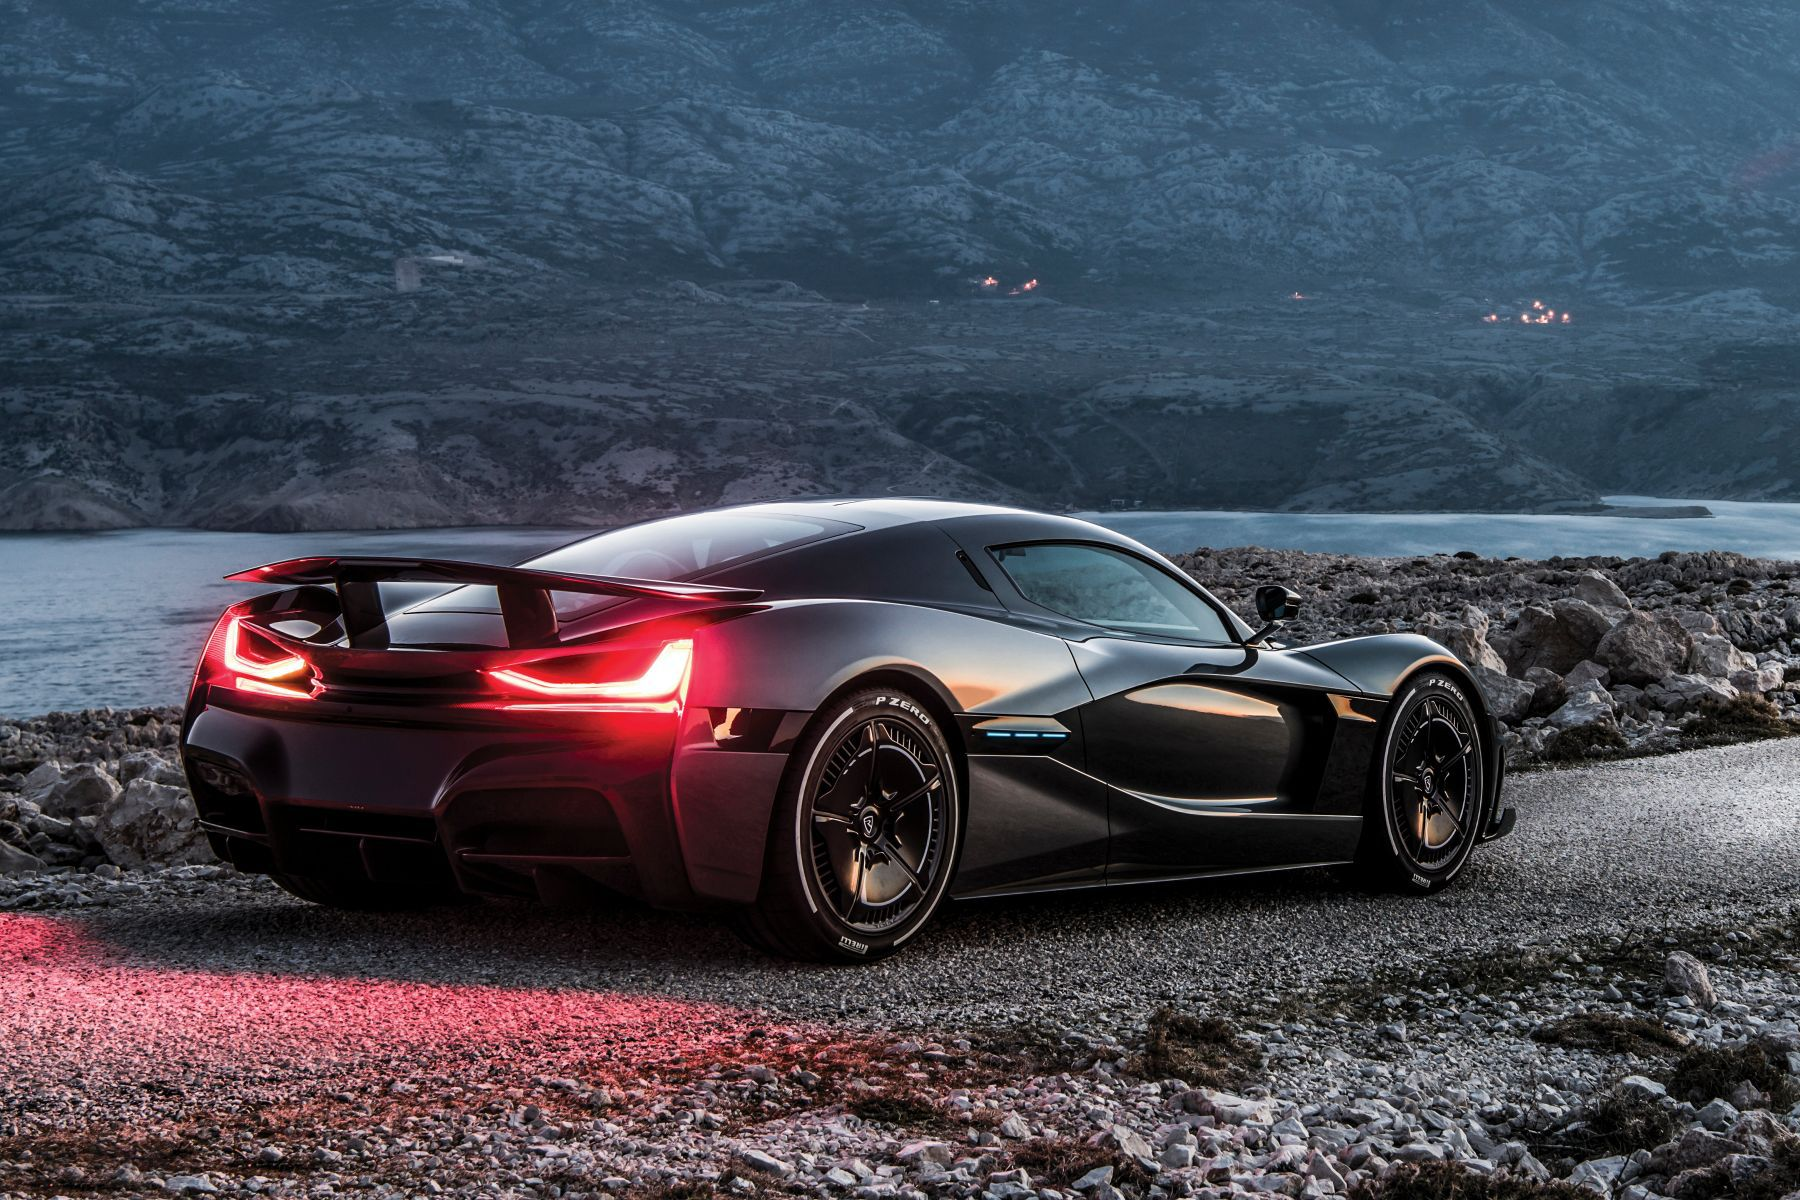 The Rimac C_TWO